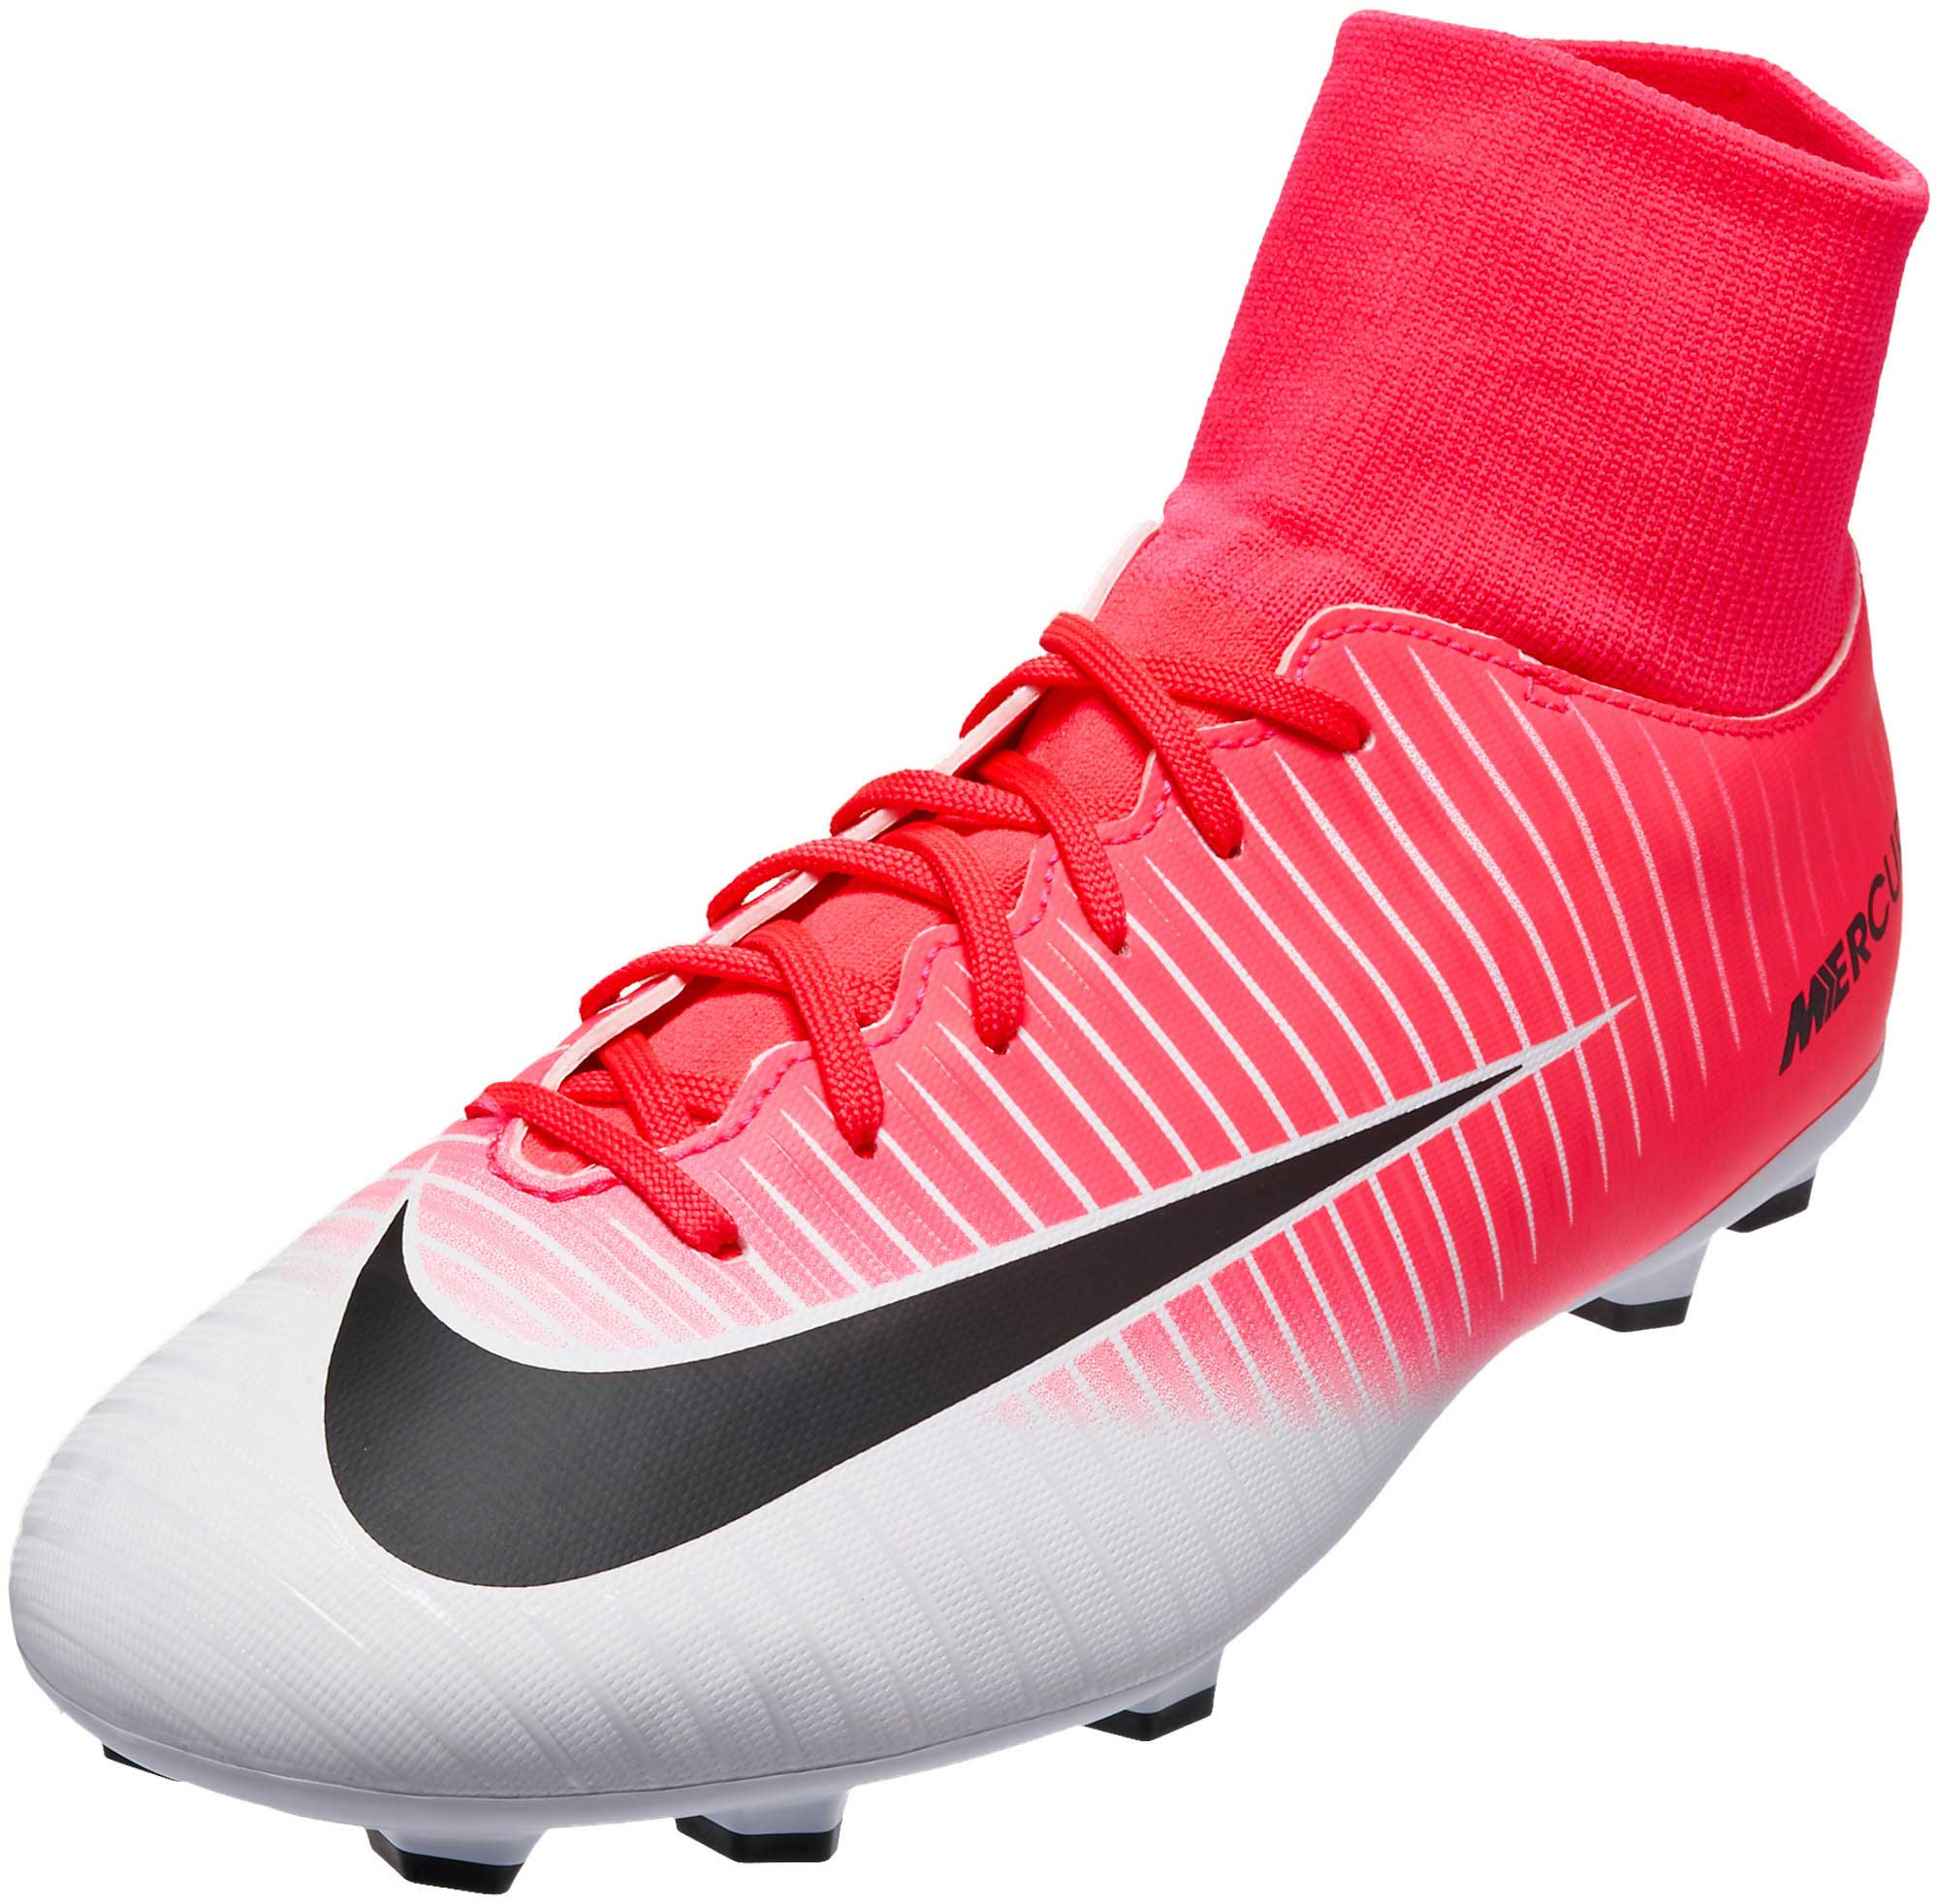 nike kids mercurial victory vi pink mercurial cleats. Black Bedroom Furniture Sets. Home Design Ideas